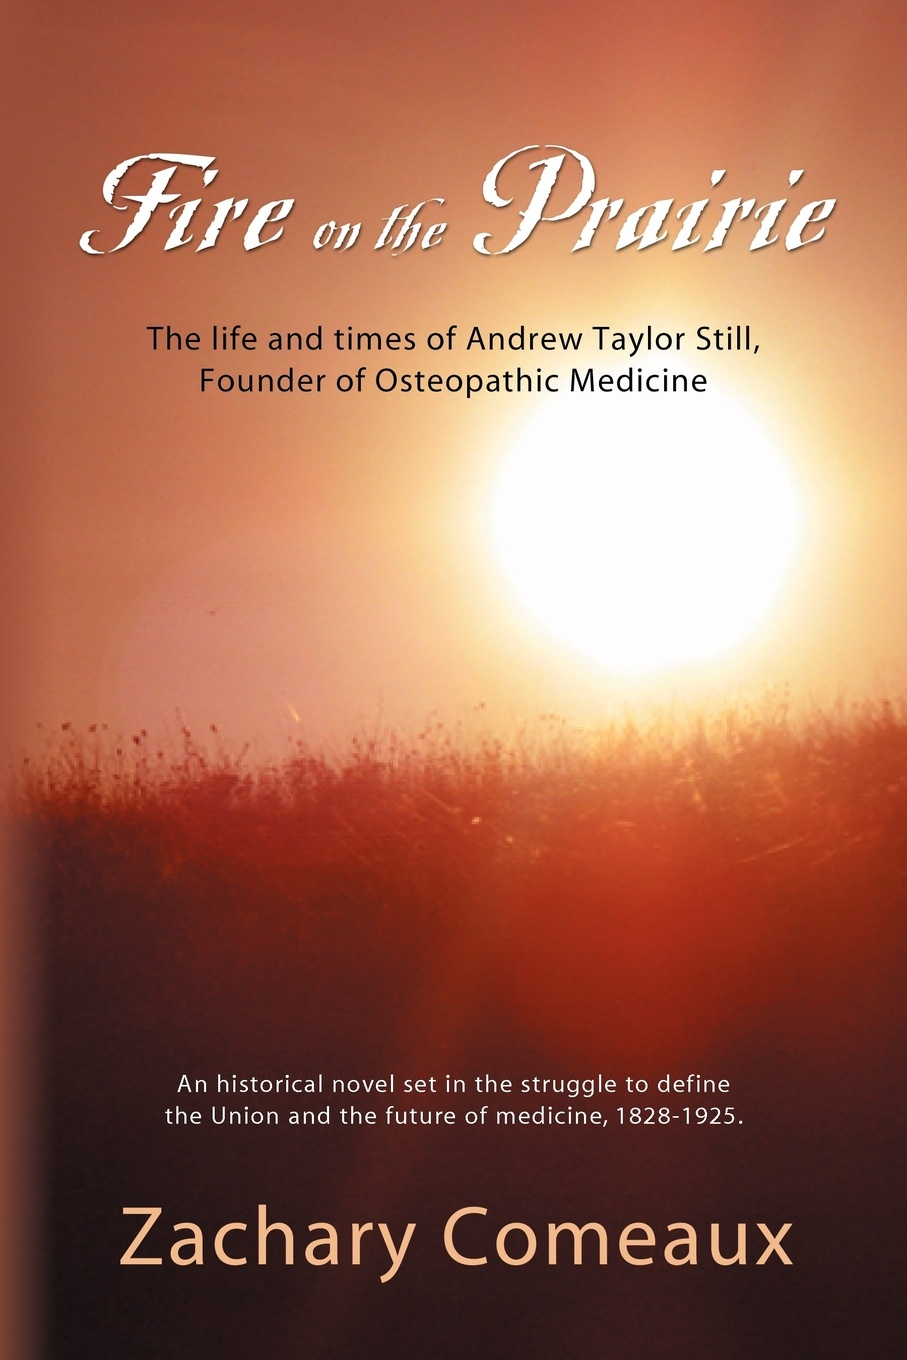 лучшая цена Zachary Comeaux Fire on the Prairie. The Life and Times of Andrew Taylor Still, Founder of Osteopathic Medicine